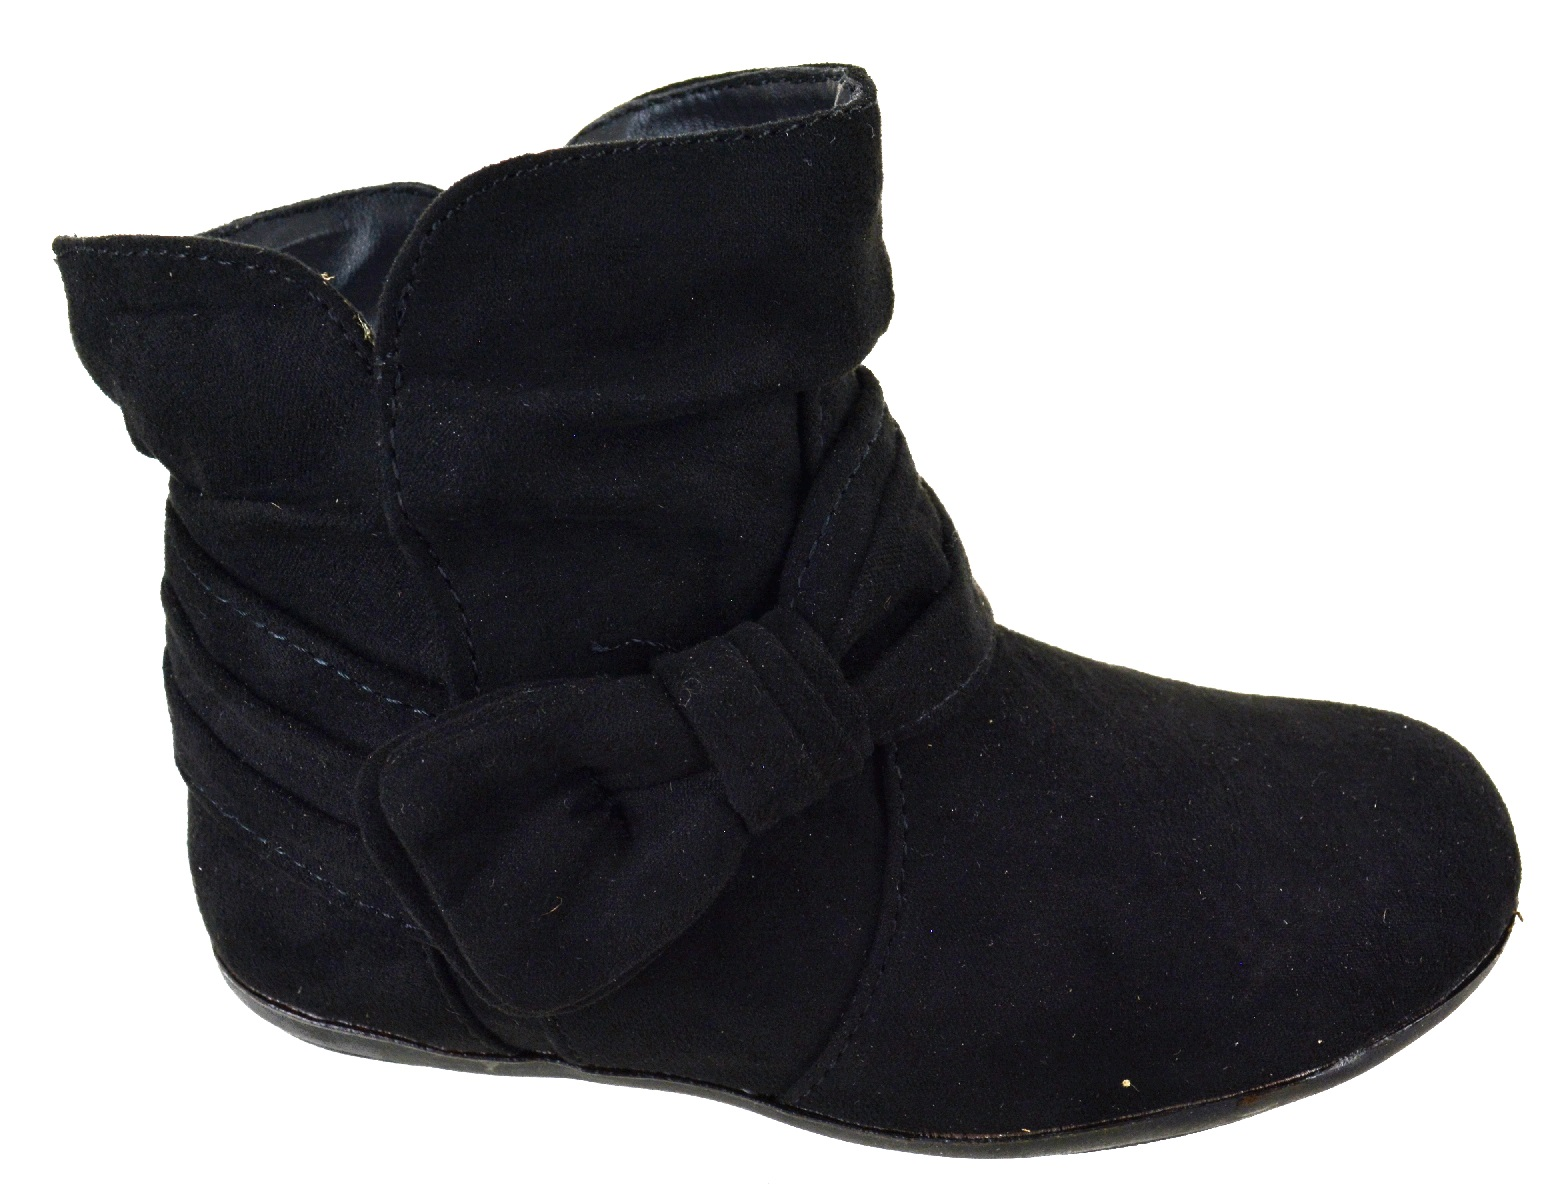 KIDS GIRLS CHILDREN BLACK SLIP ON ANKLE FAUX SUEDE SCHOOL BOOTS SHOES SIZE 5-11